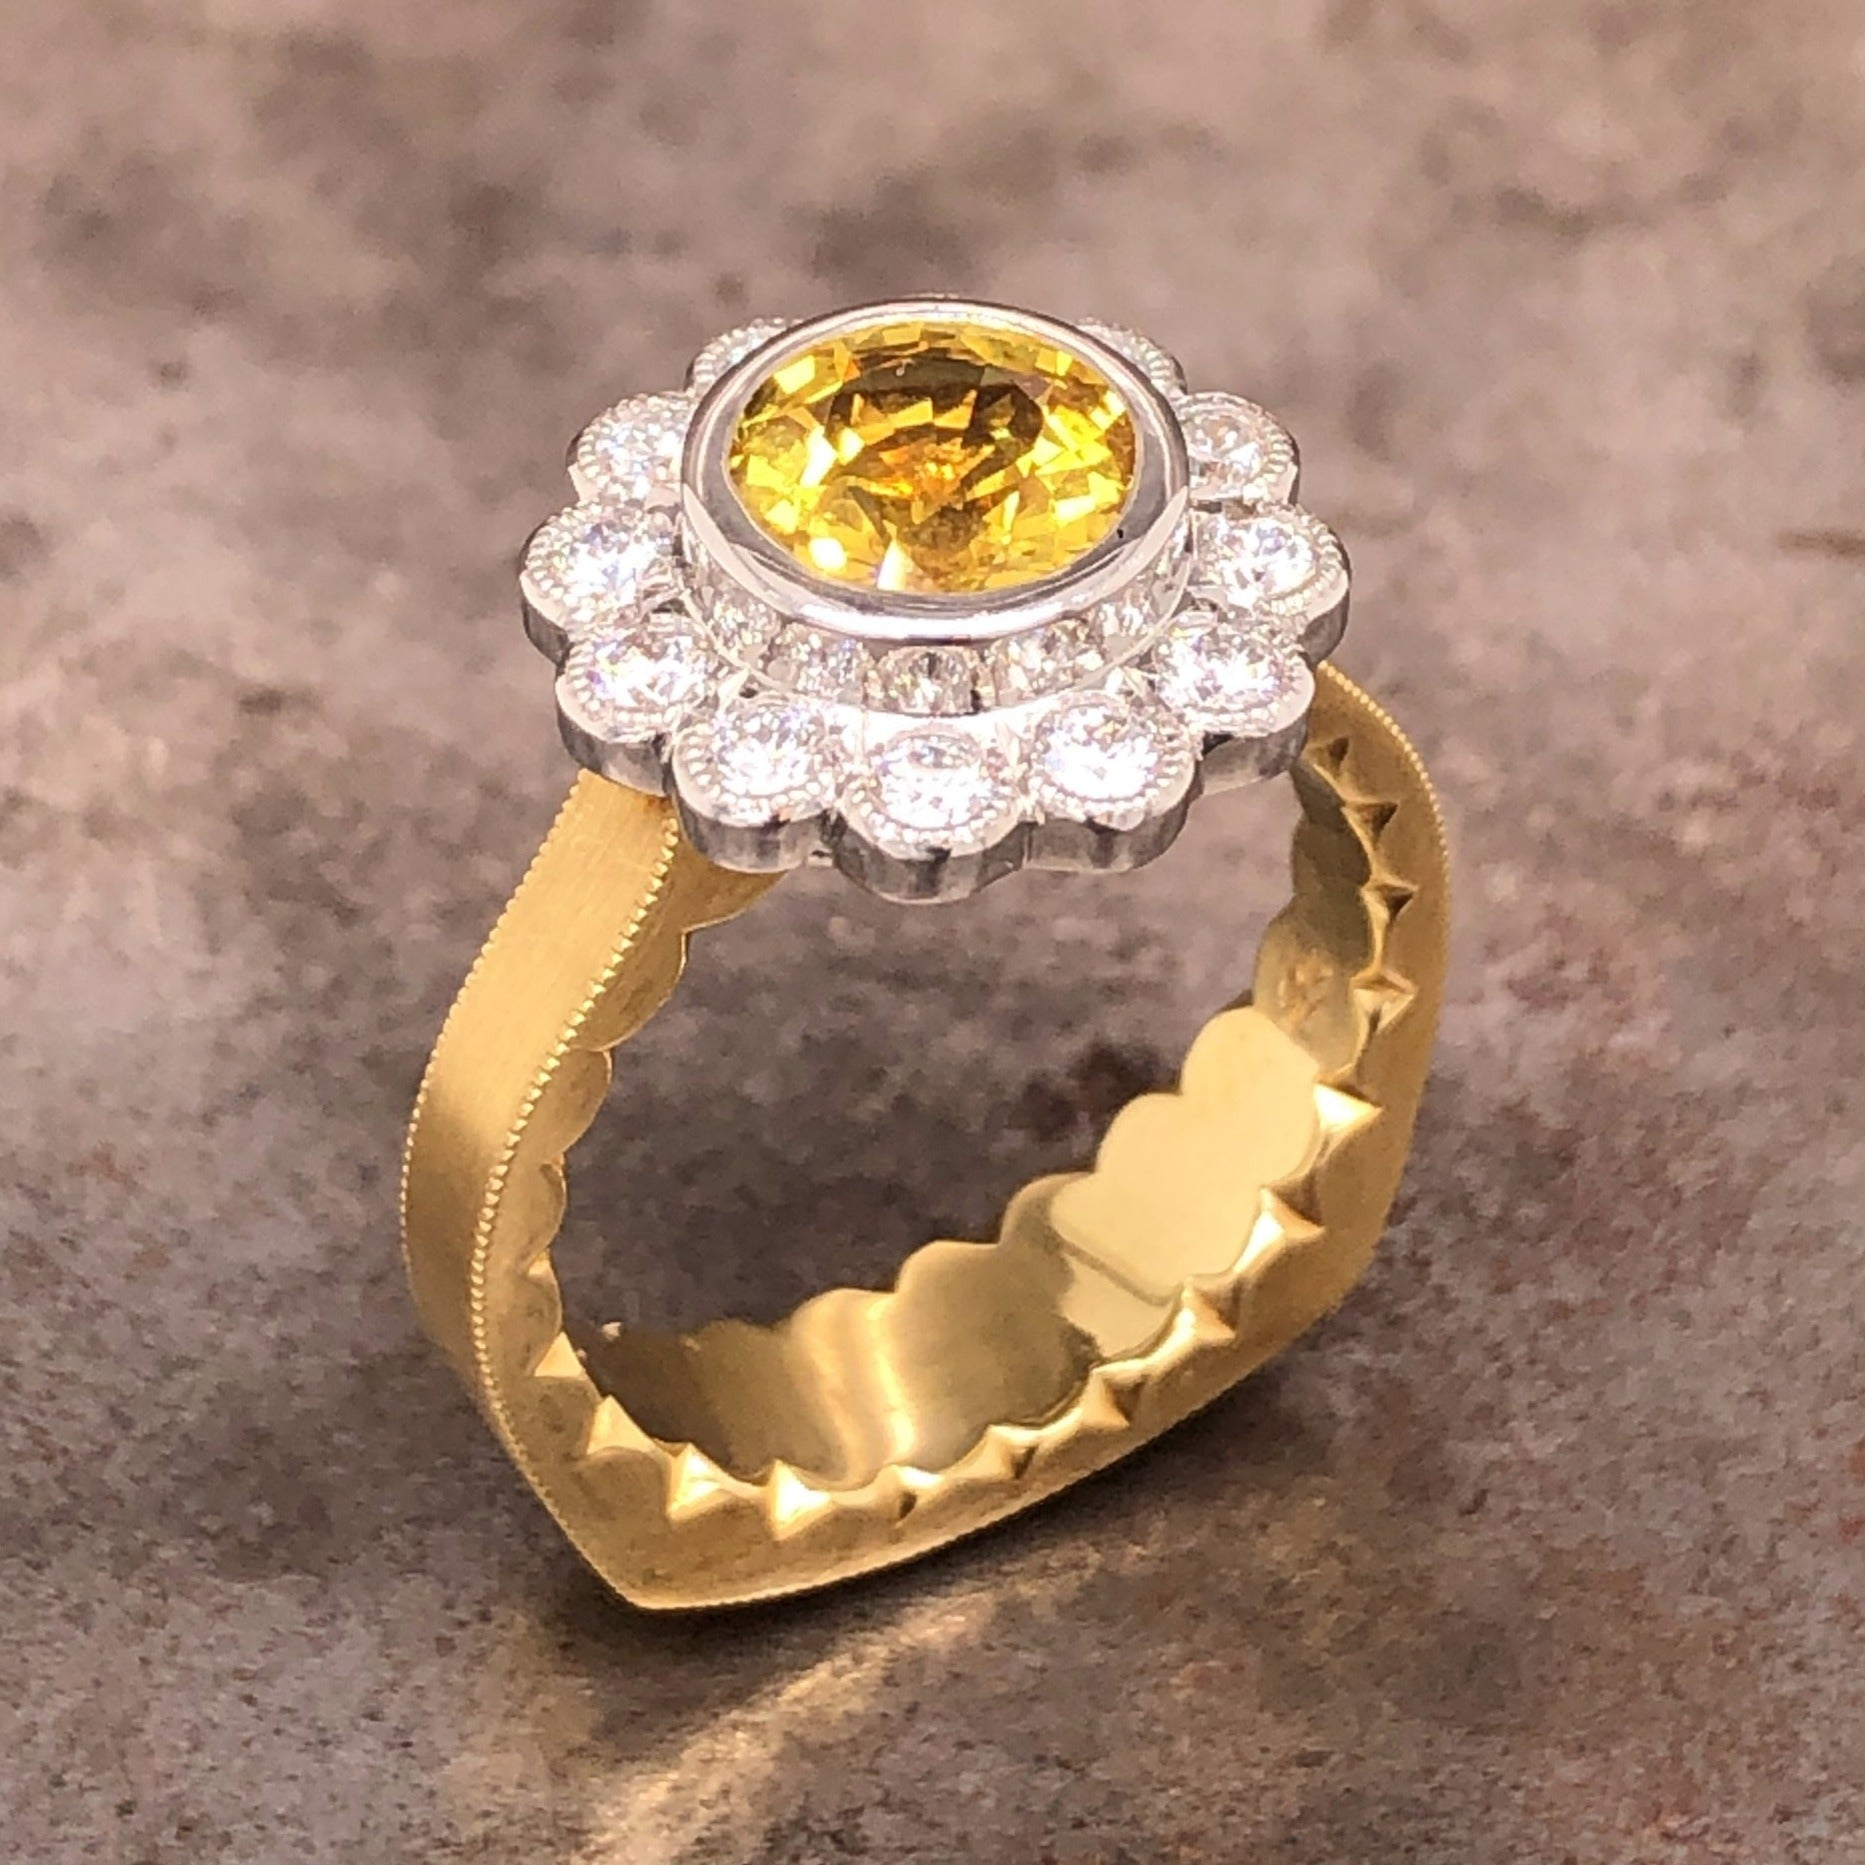 18k yellow gold and platinum yellow sapphire and diamond ring